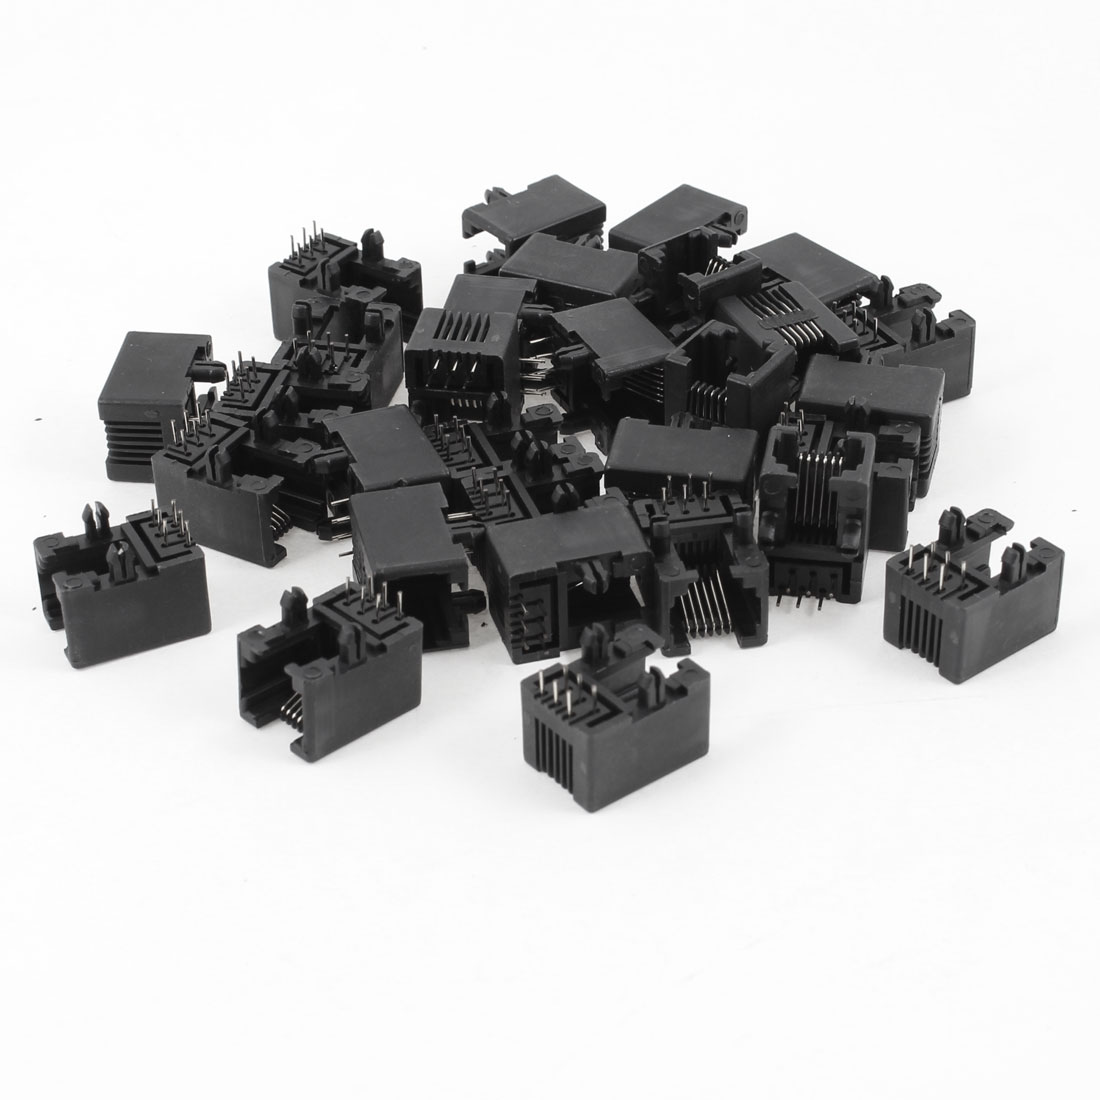 30 Pcs 90 Degree 6 Round Pin RJ12 6P6C Network Modular PCB Connector Jacks Black